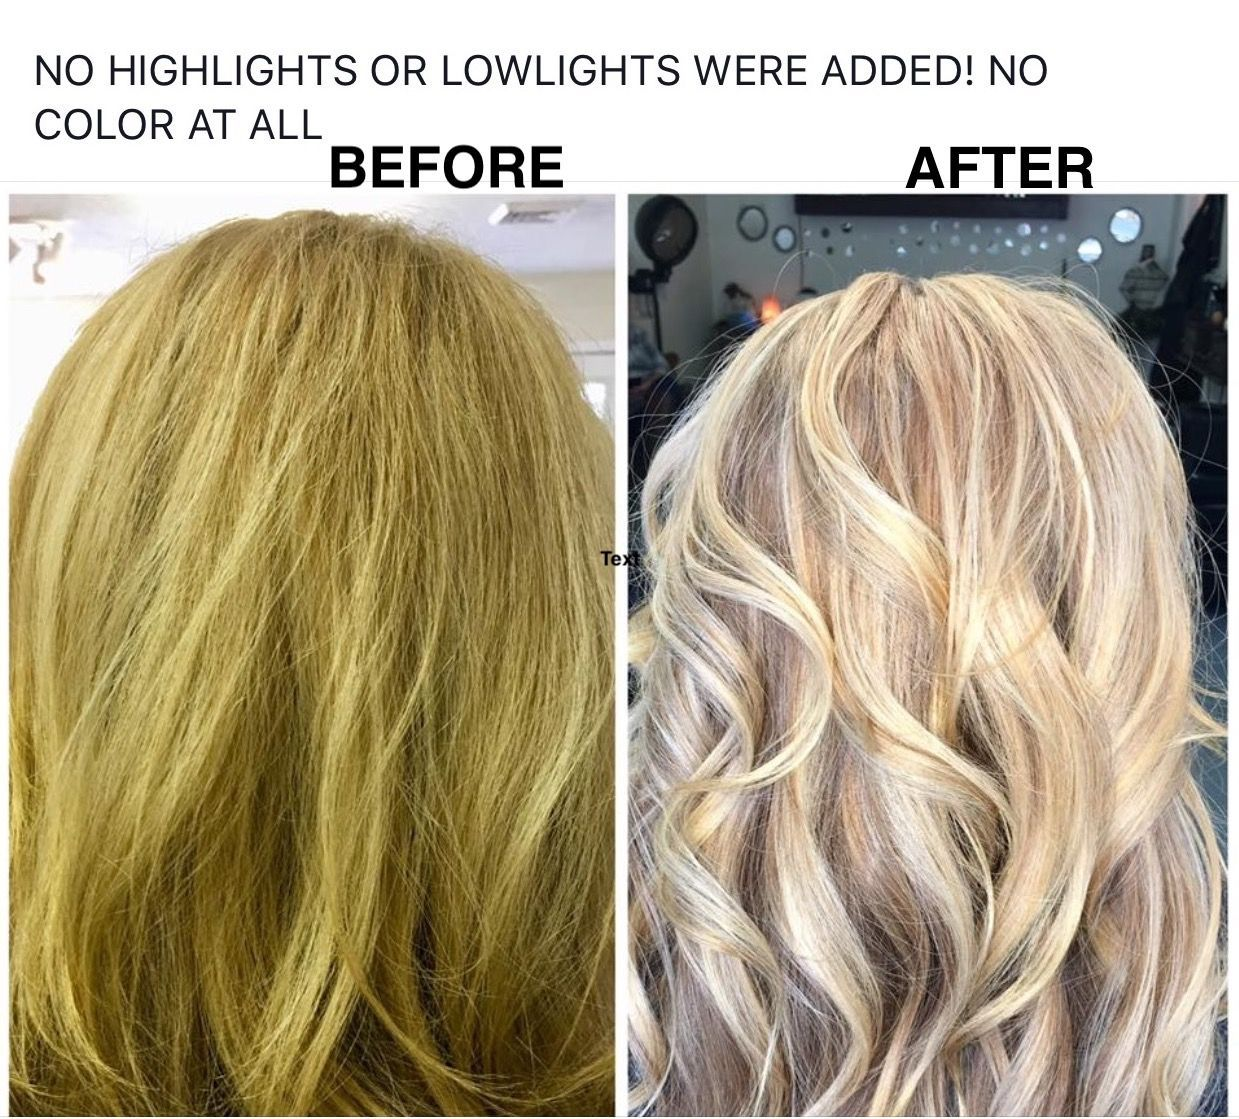 How To Get Rid Of Your Yellow And Brassy Tones Best Purple Shampoo Hair Product Brassy In 2020 Yellow Blonde Hair Yellow Hair Color Purple Shampoo